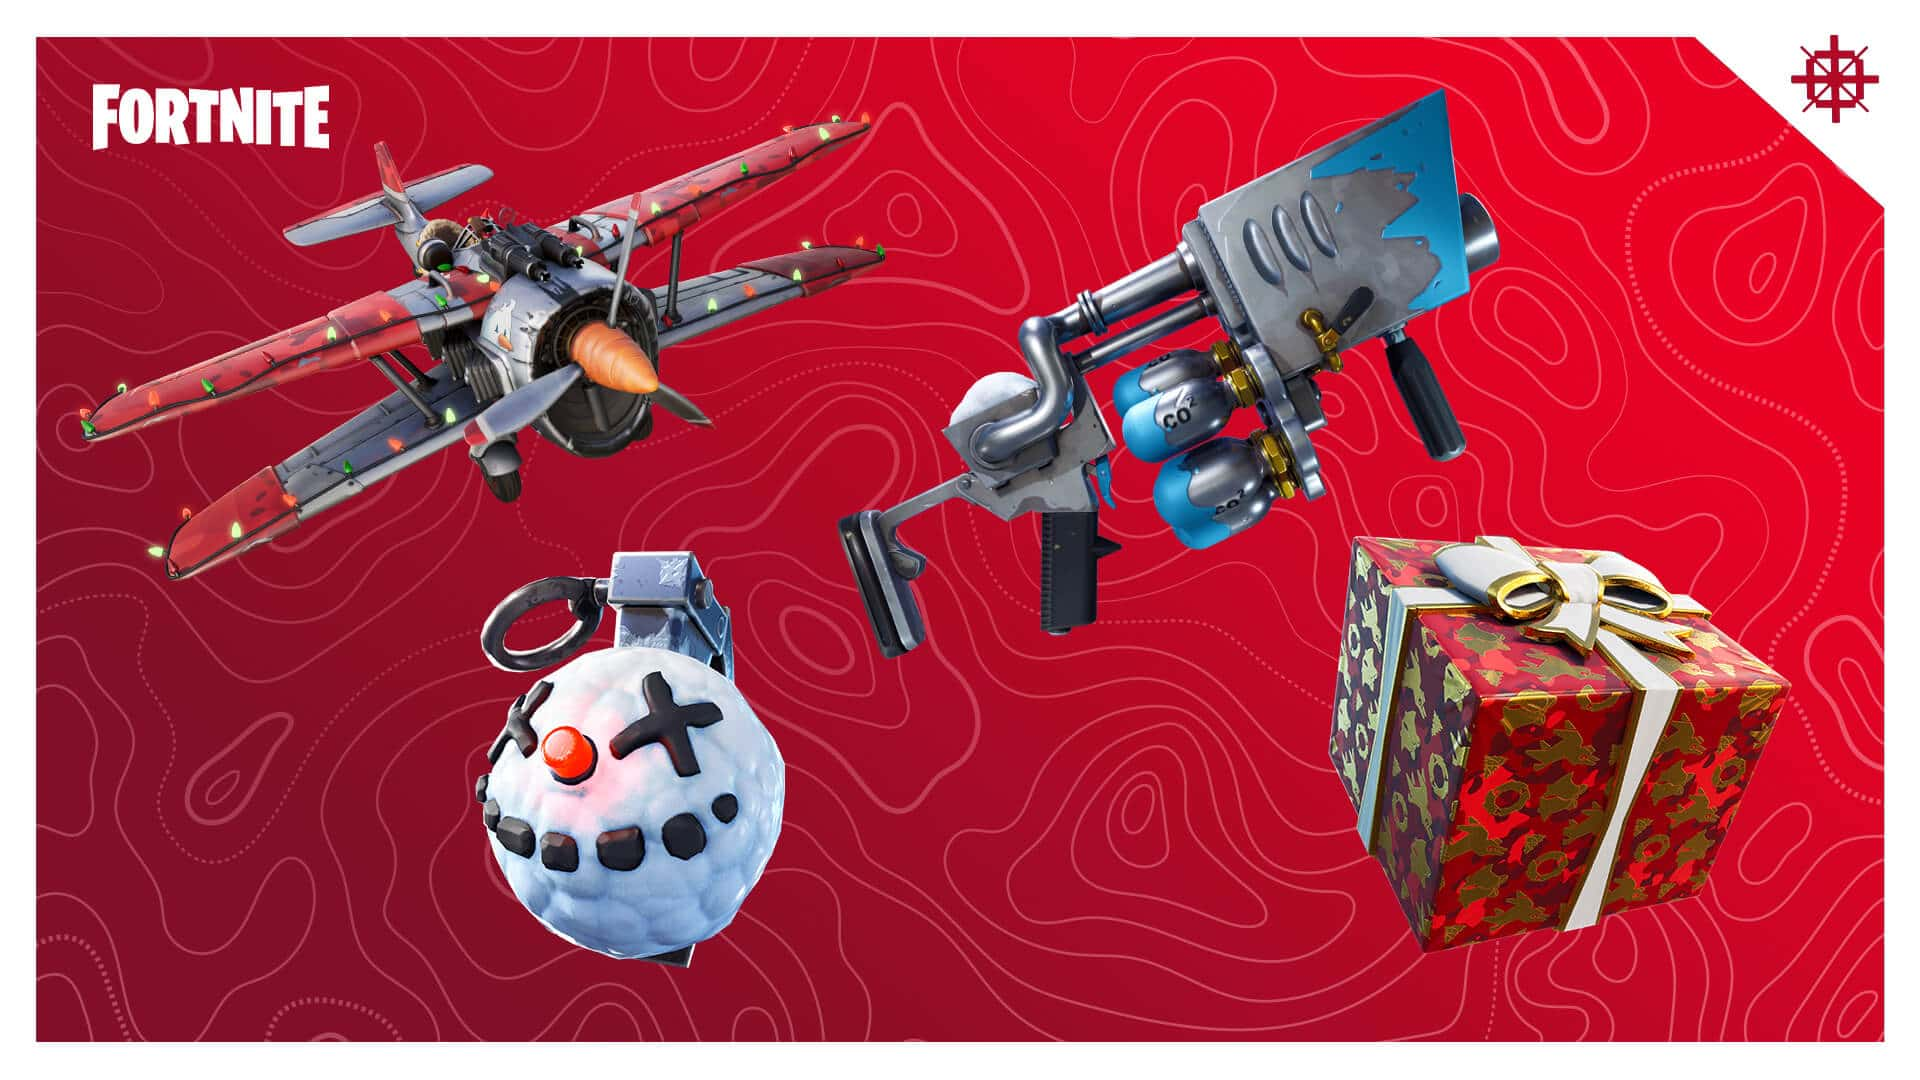 Fortnite Operation Snowdown Items